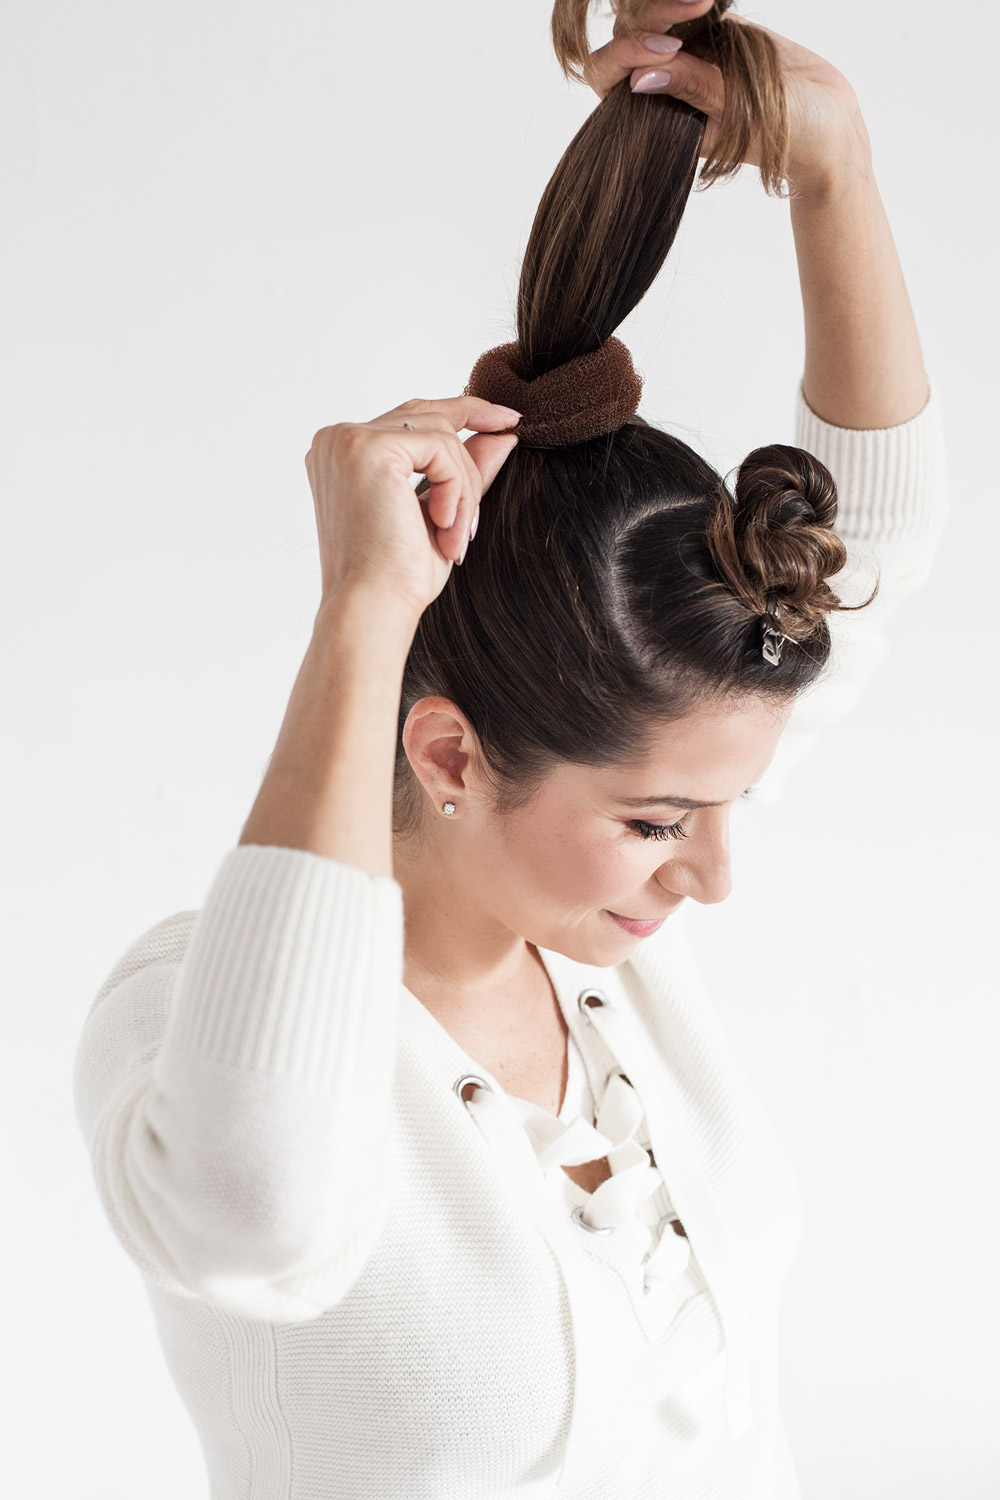 hair-tutorial-top-bun-work-hair-ideas-medium-hair-tutorials-how-to-make-the-perfect-bun2